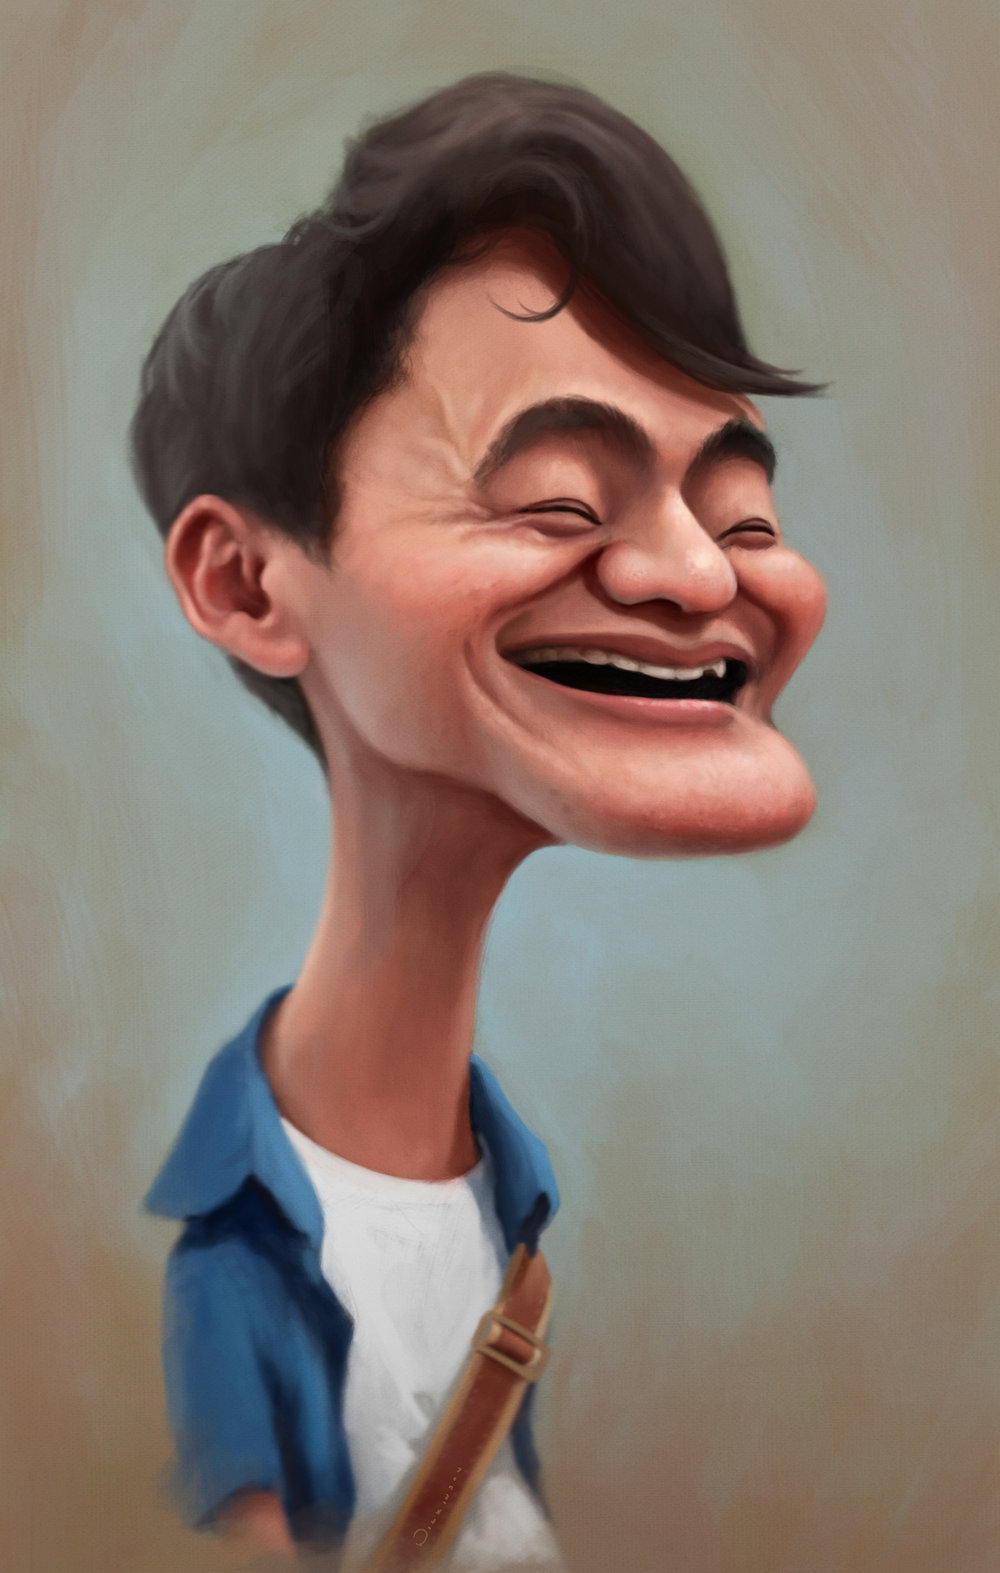 Ainori Shy boy caricature